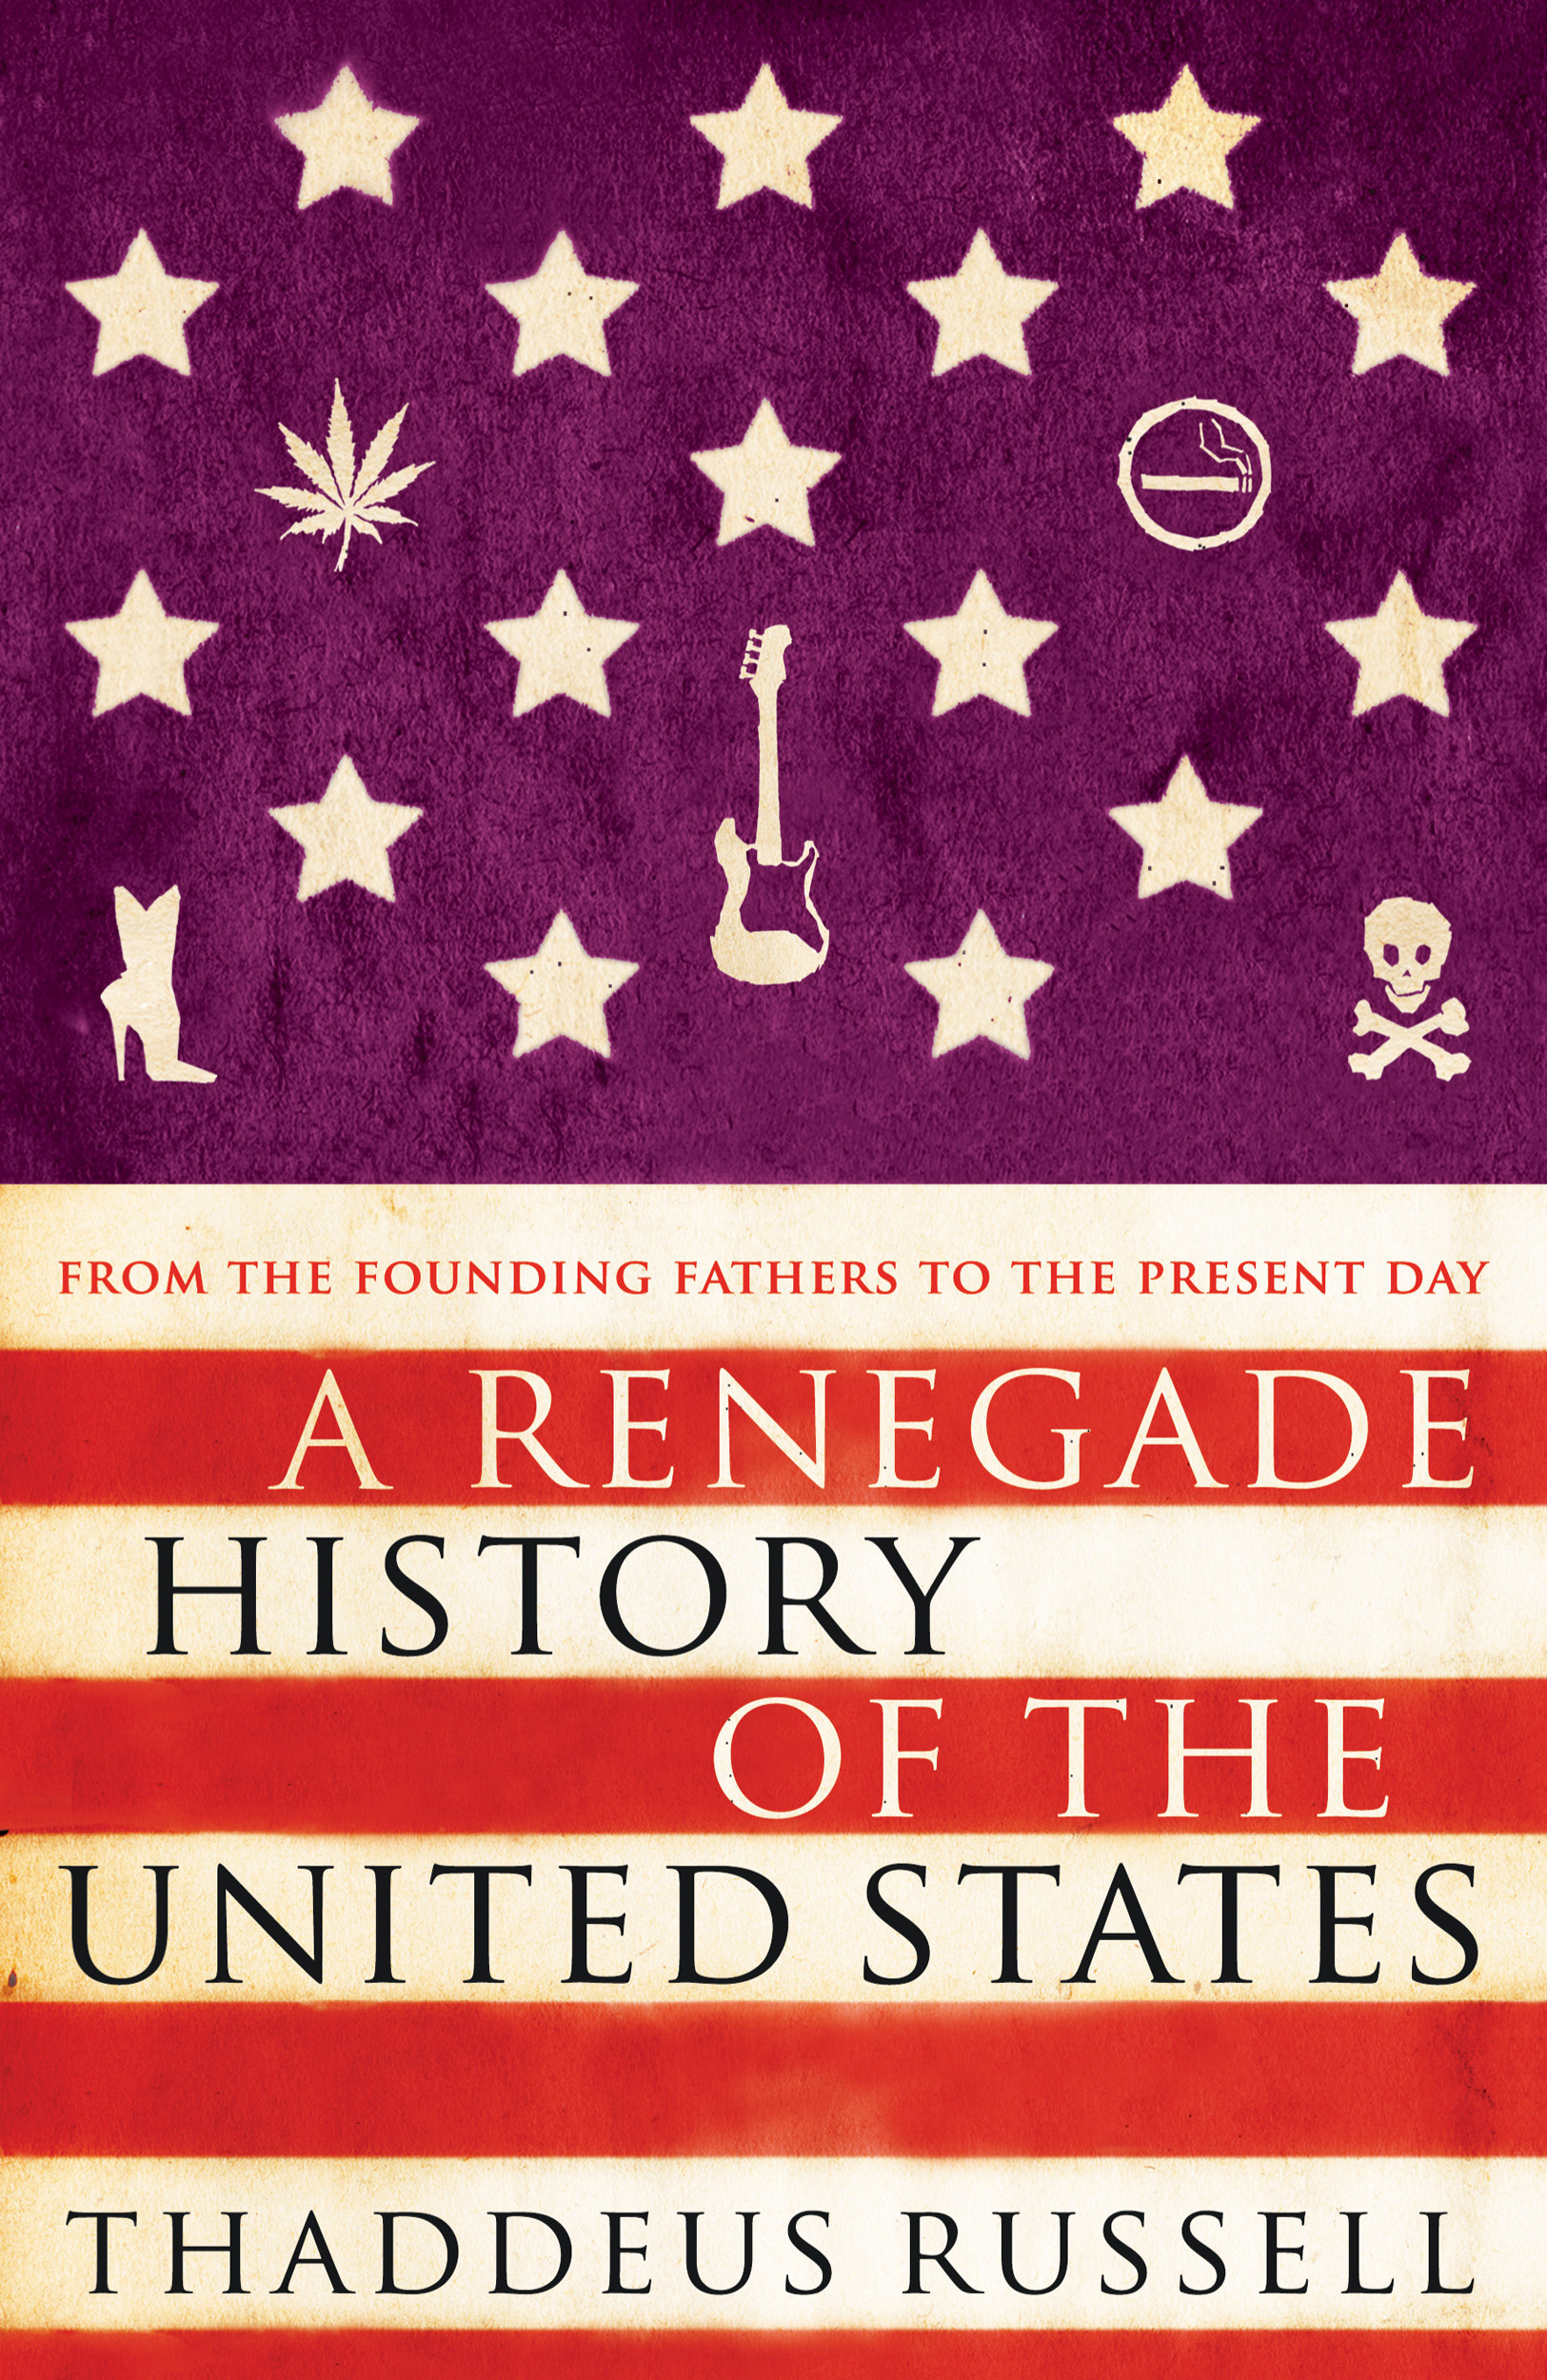 a renegade history of the united states pdf